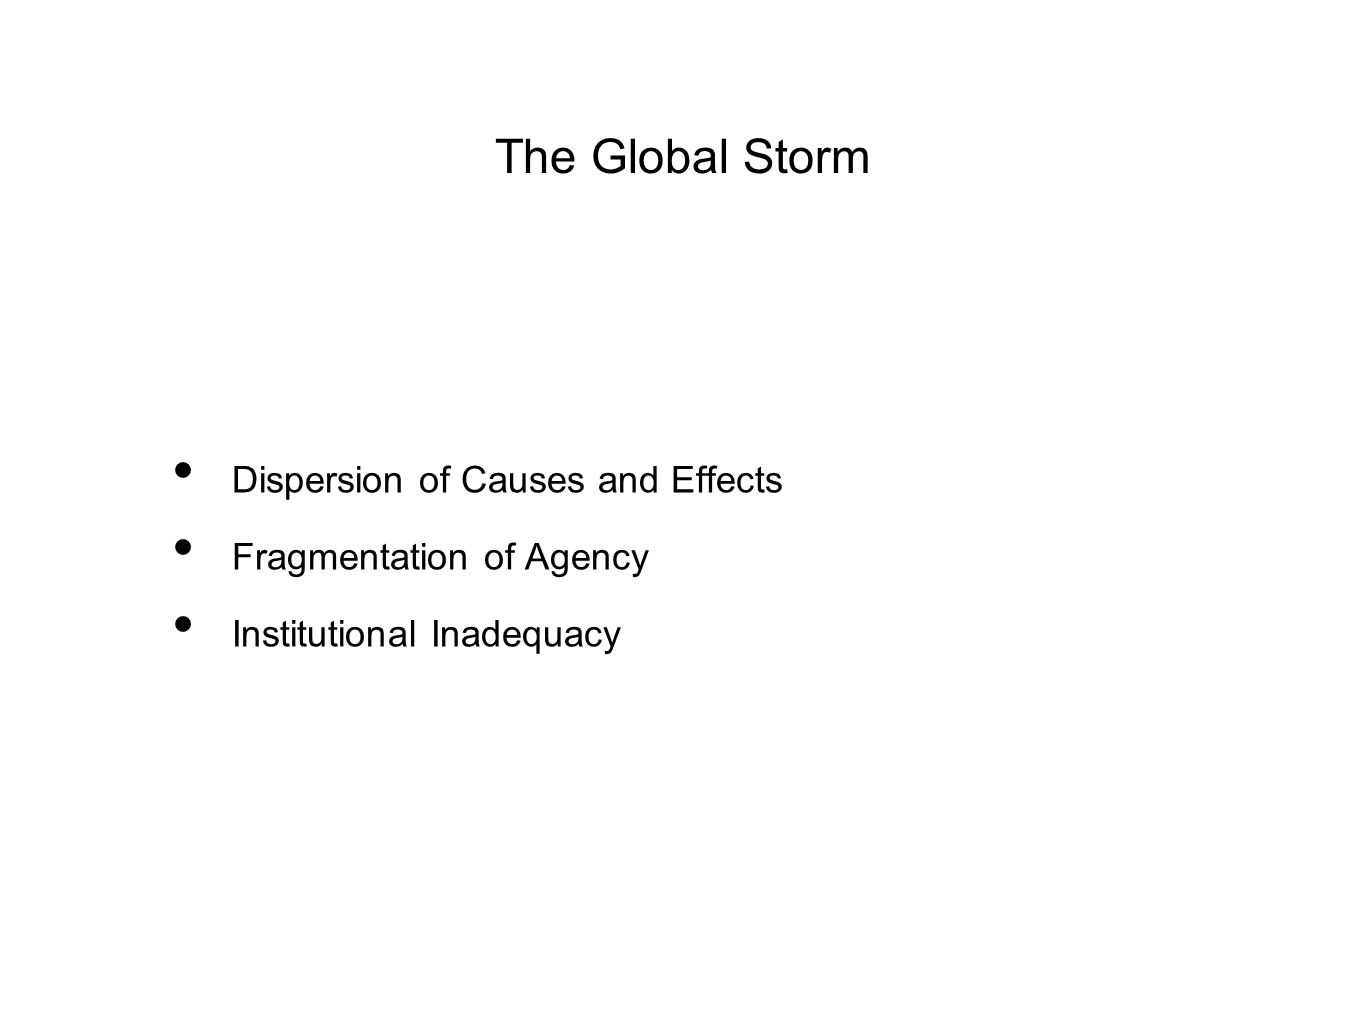 The Global Storm Dispersion of Causes and Effects Fragmentation of Agency Institutional Inadequacy